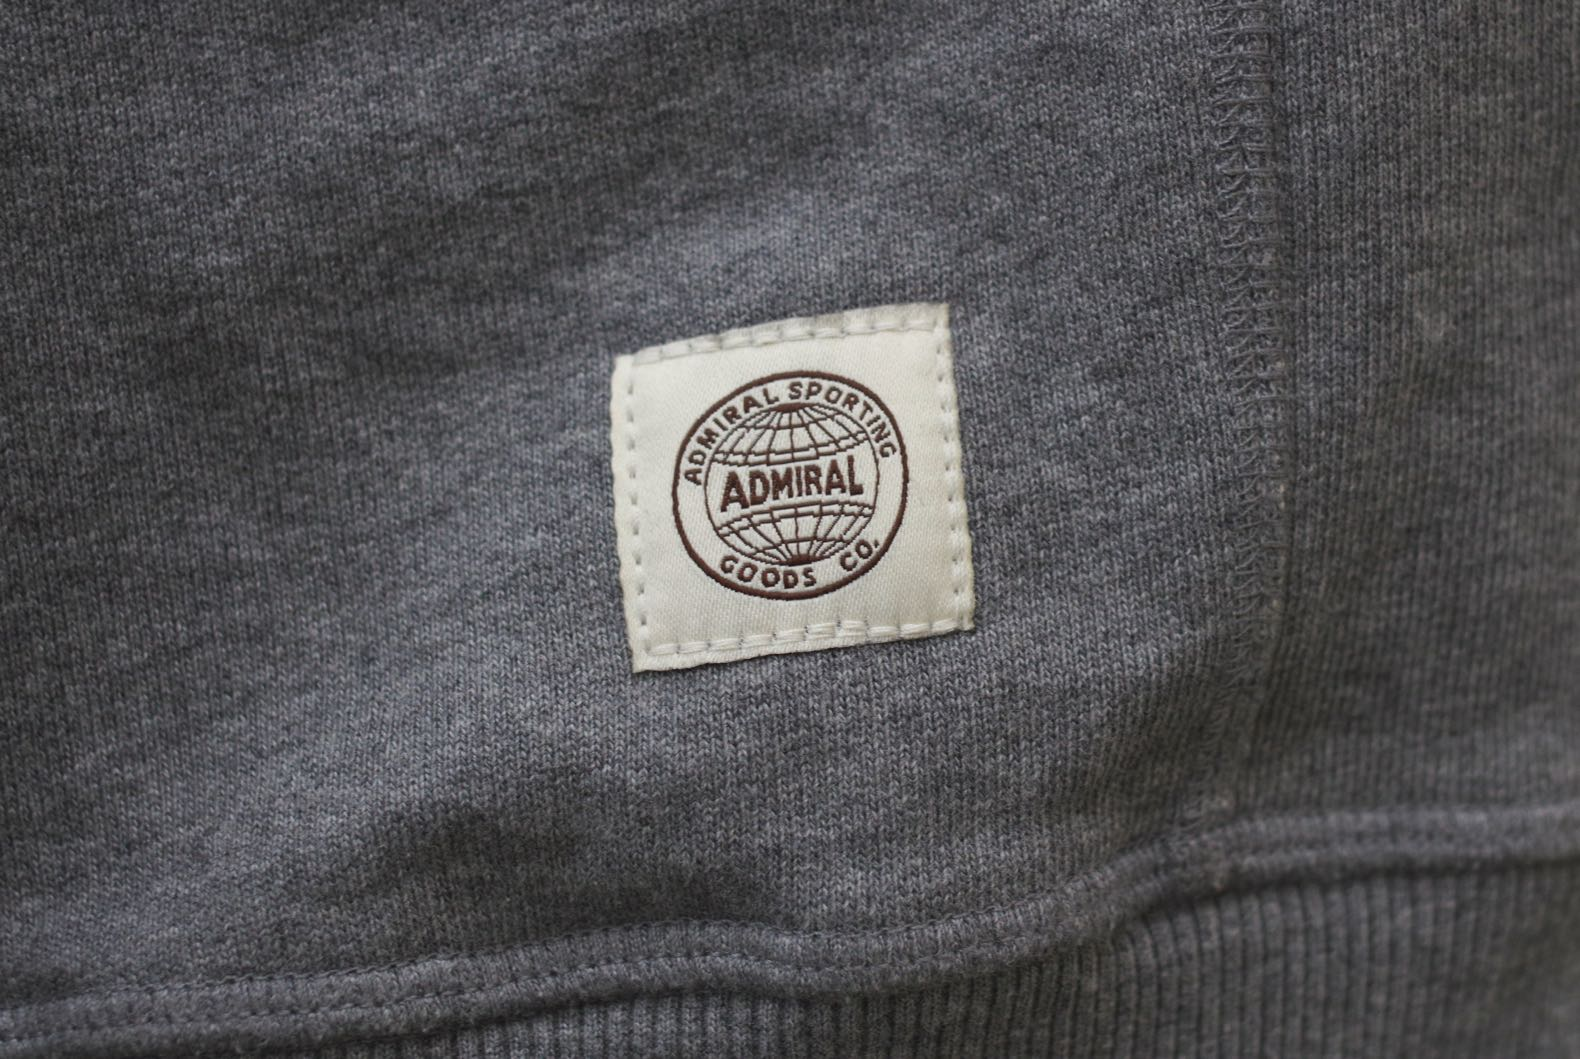 Admiral sporting goods a heritage sportswear military brands from UK